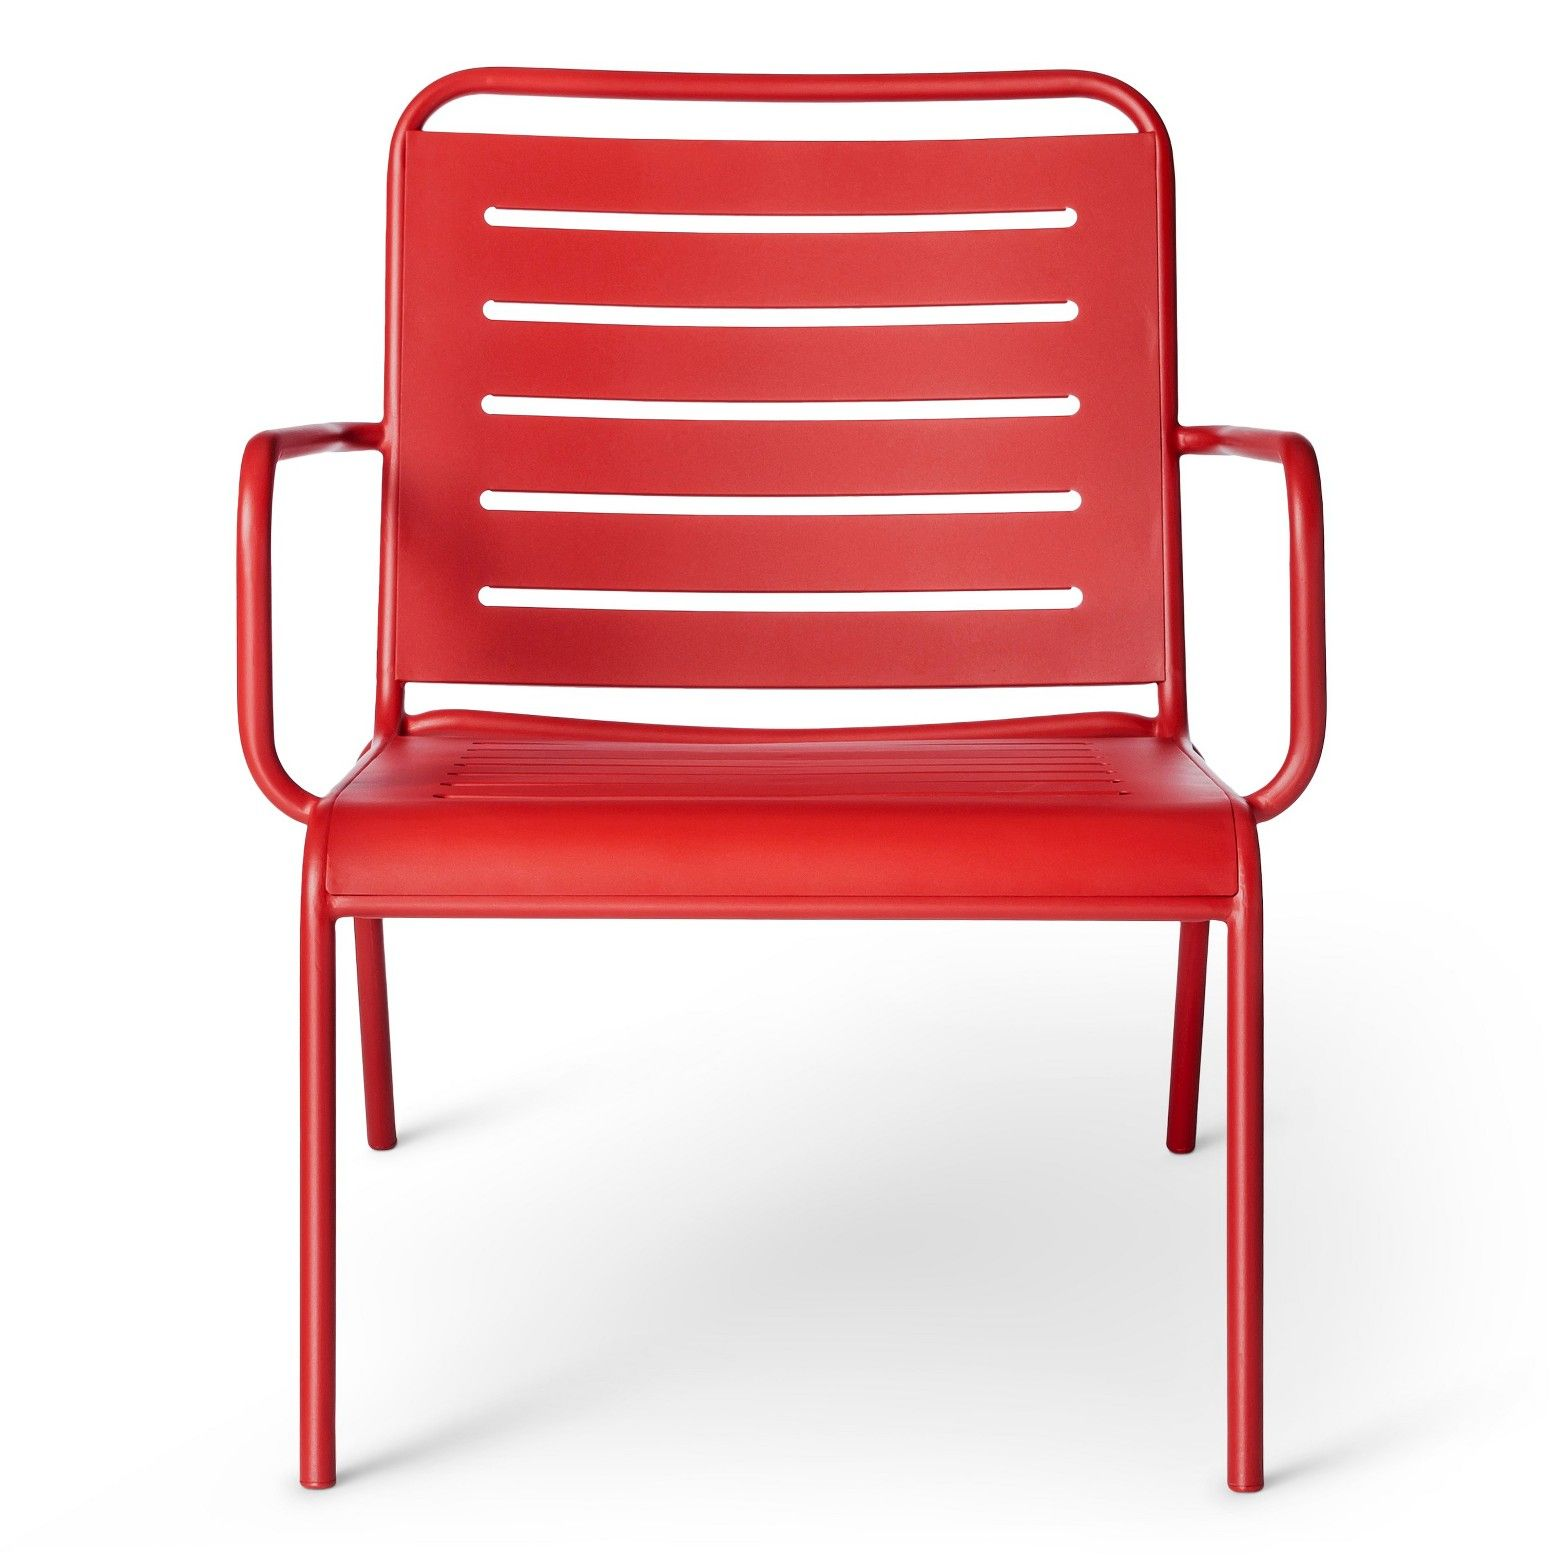 Outfit your deck or patio with the Metal Deep Seat Chair in Red from